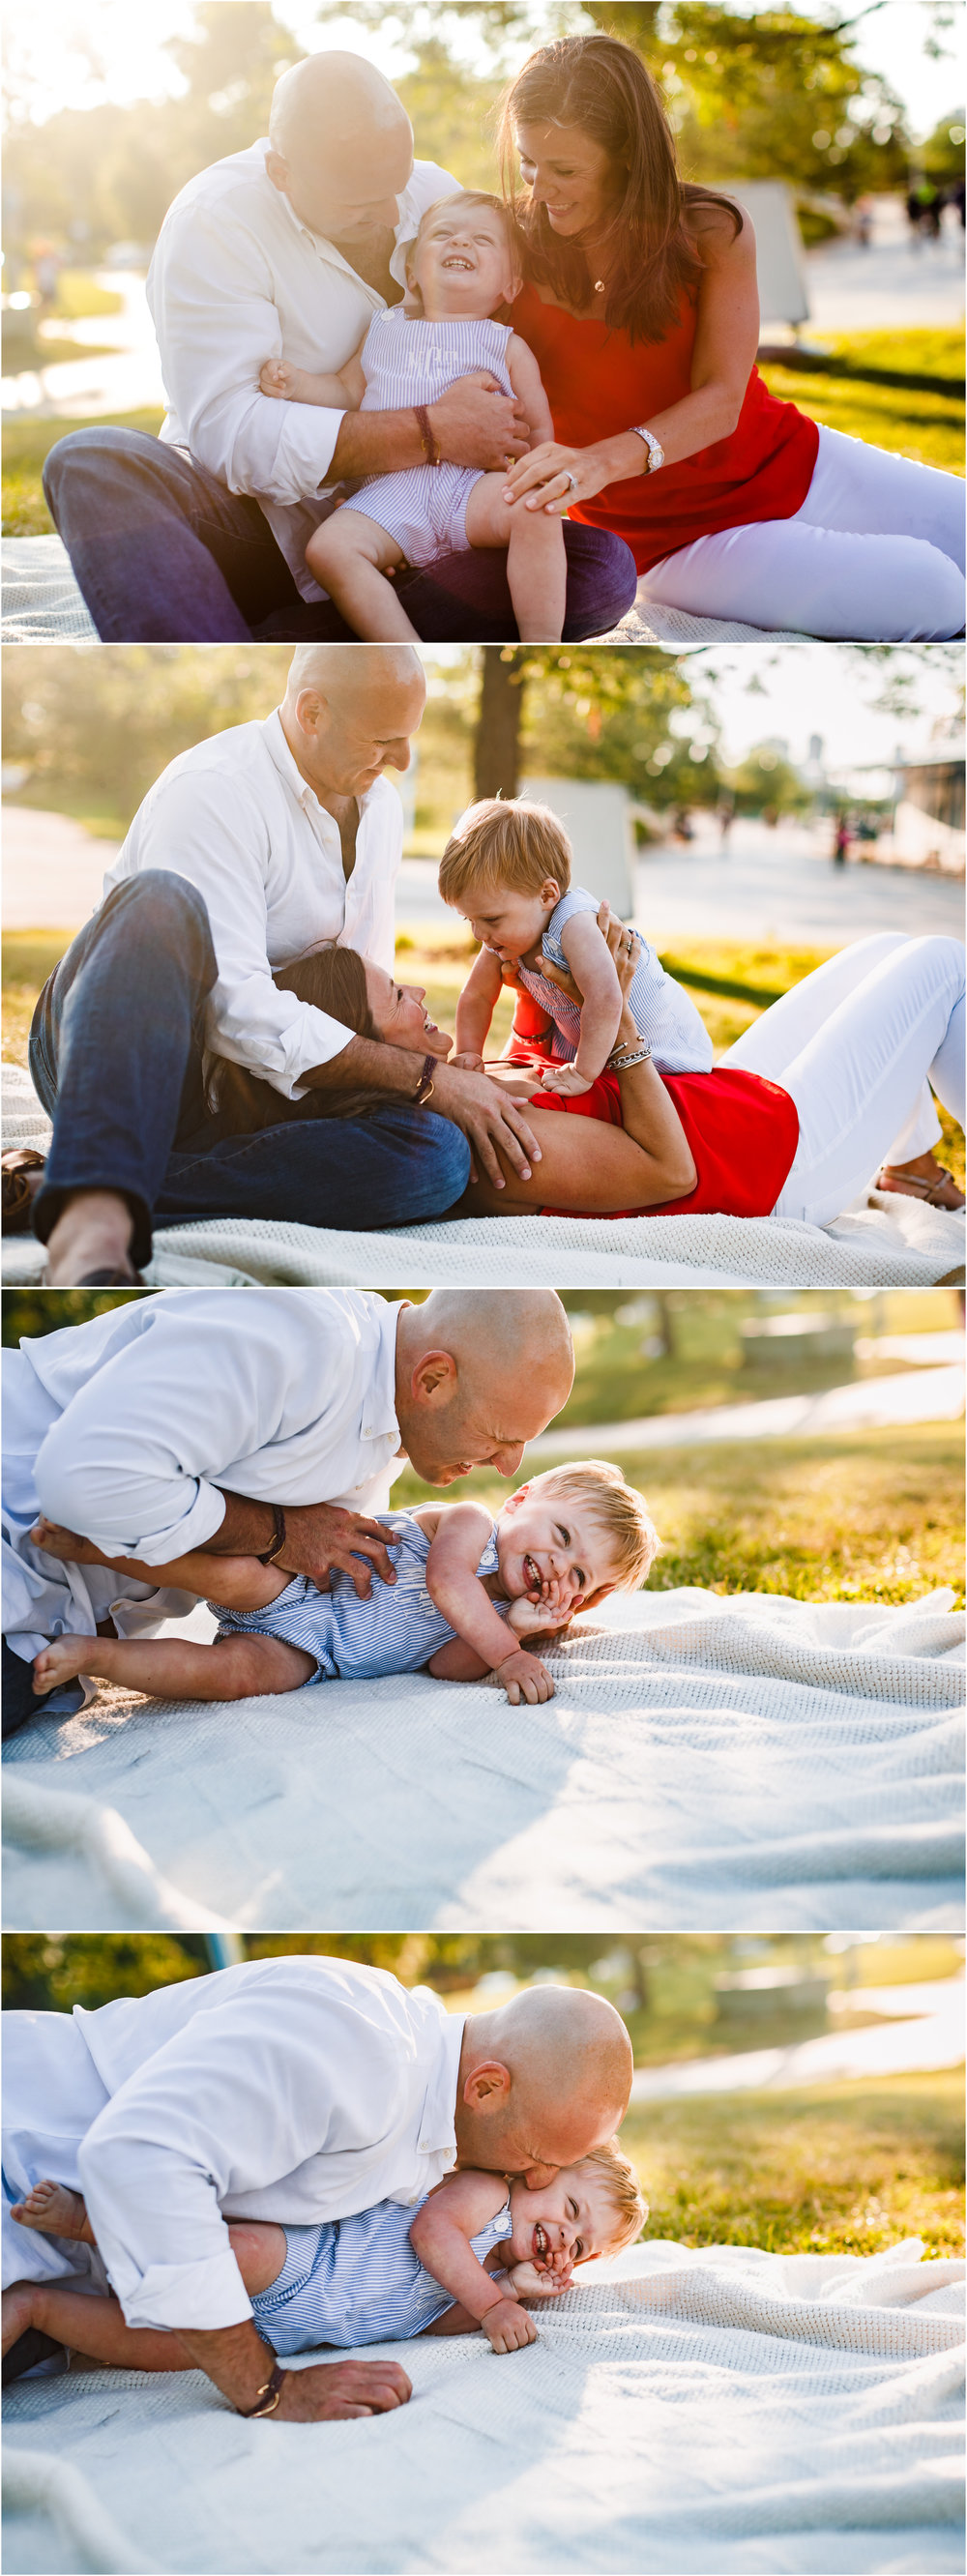 chicago family lifestyle photographer north avenue beach jenny grimm